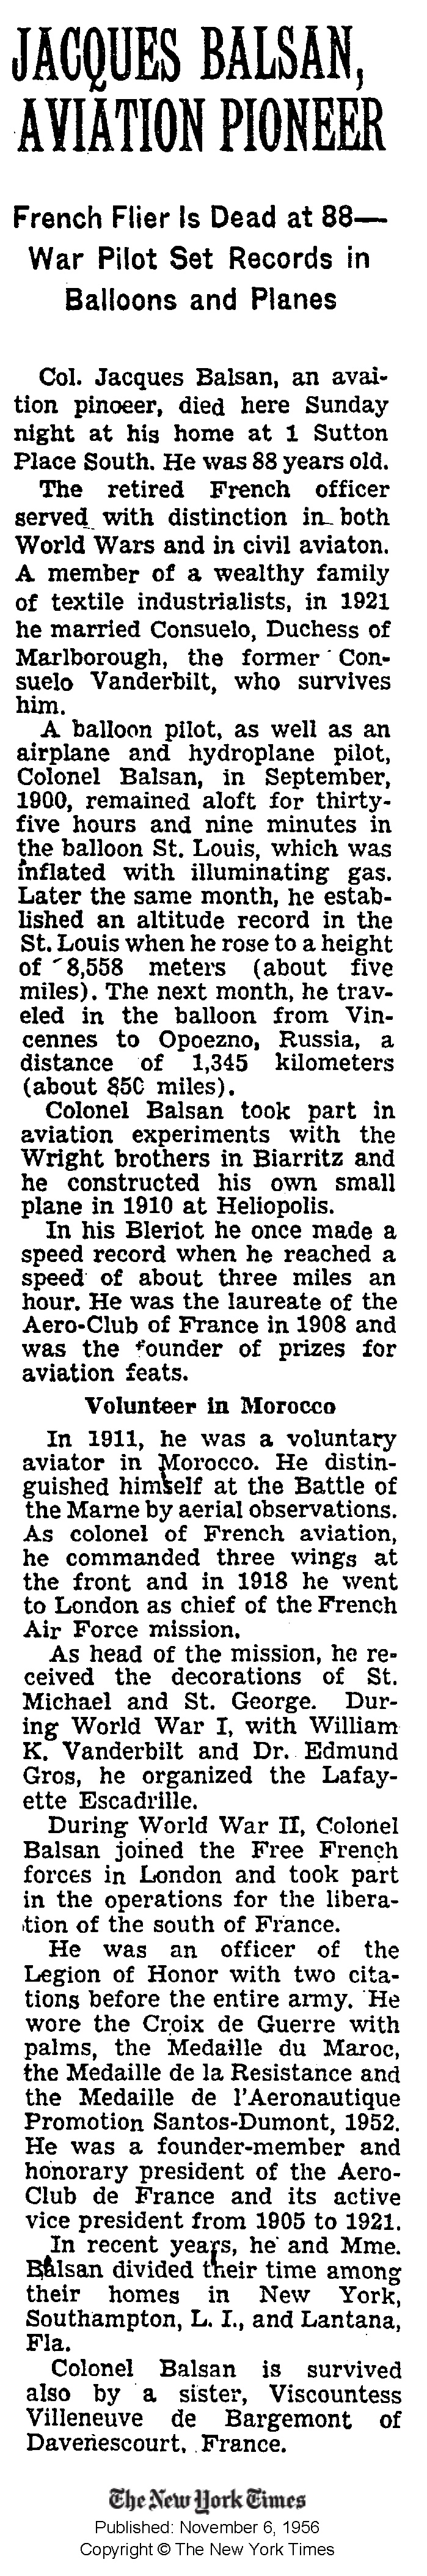 NY Times (6 Nov 1956) 'Jacques Basan, Aviation Pioneer. French Flier